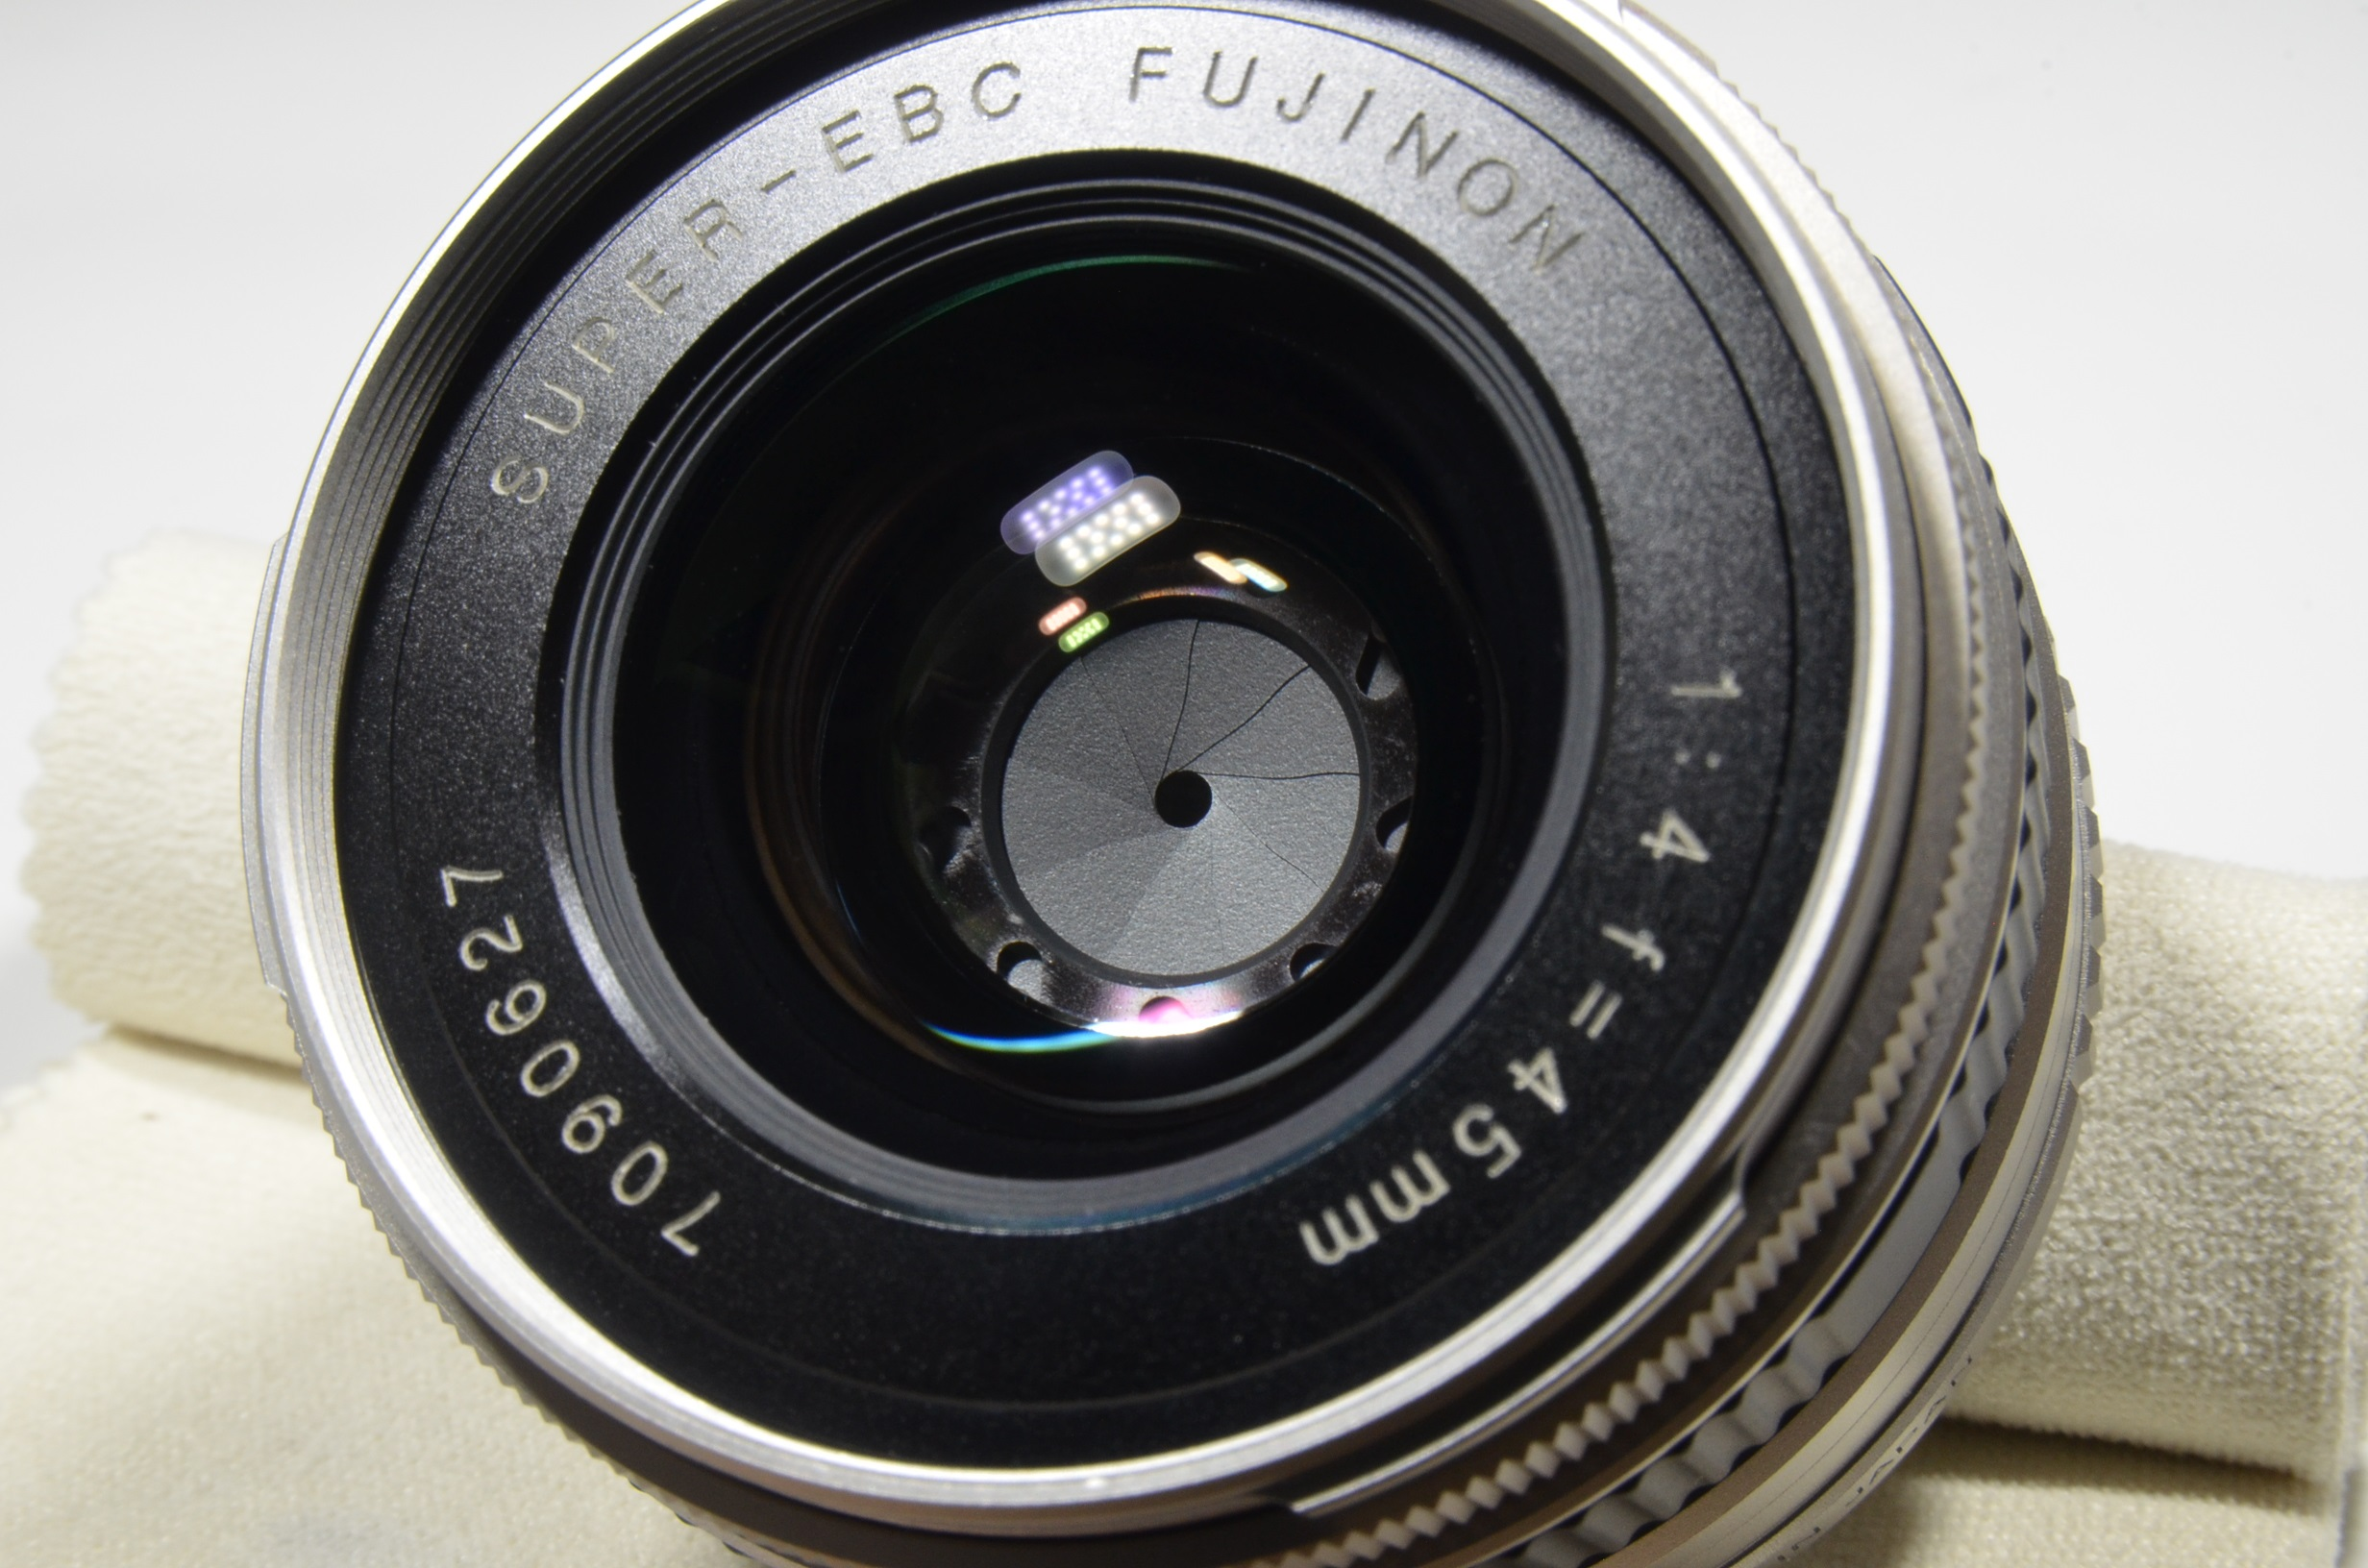 fujifilm tx-1 35mm film camera with fujinon super-ebc 45mm f4